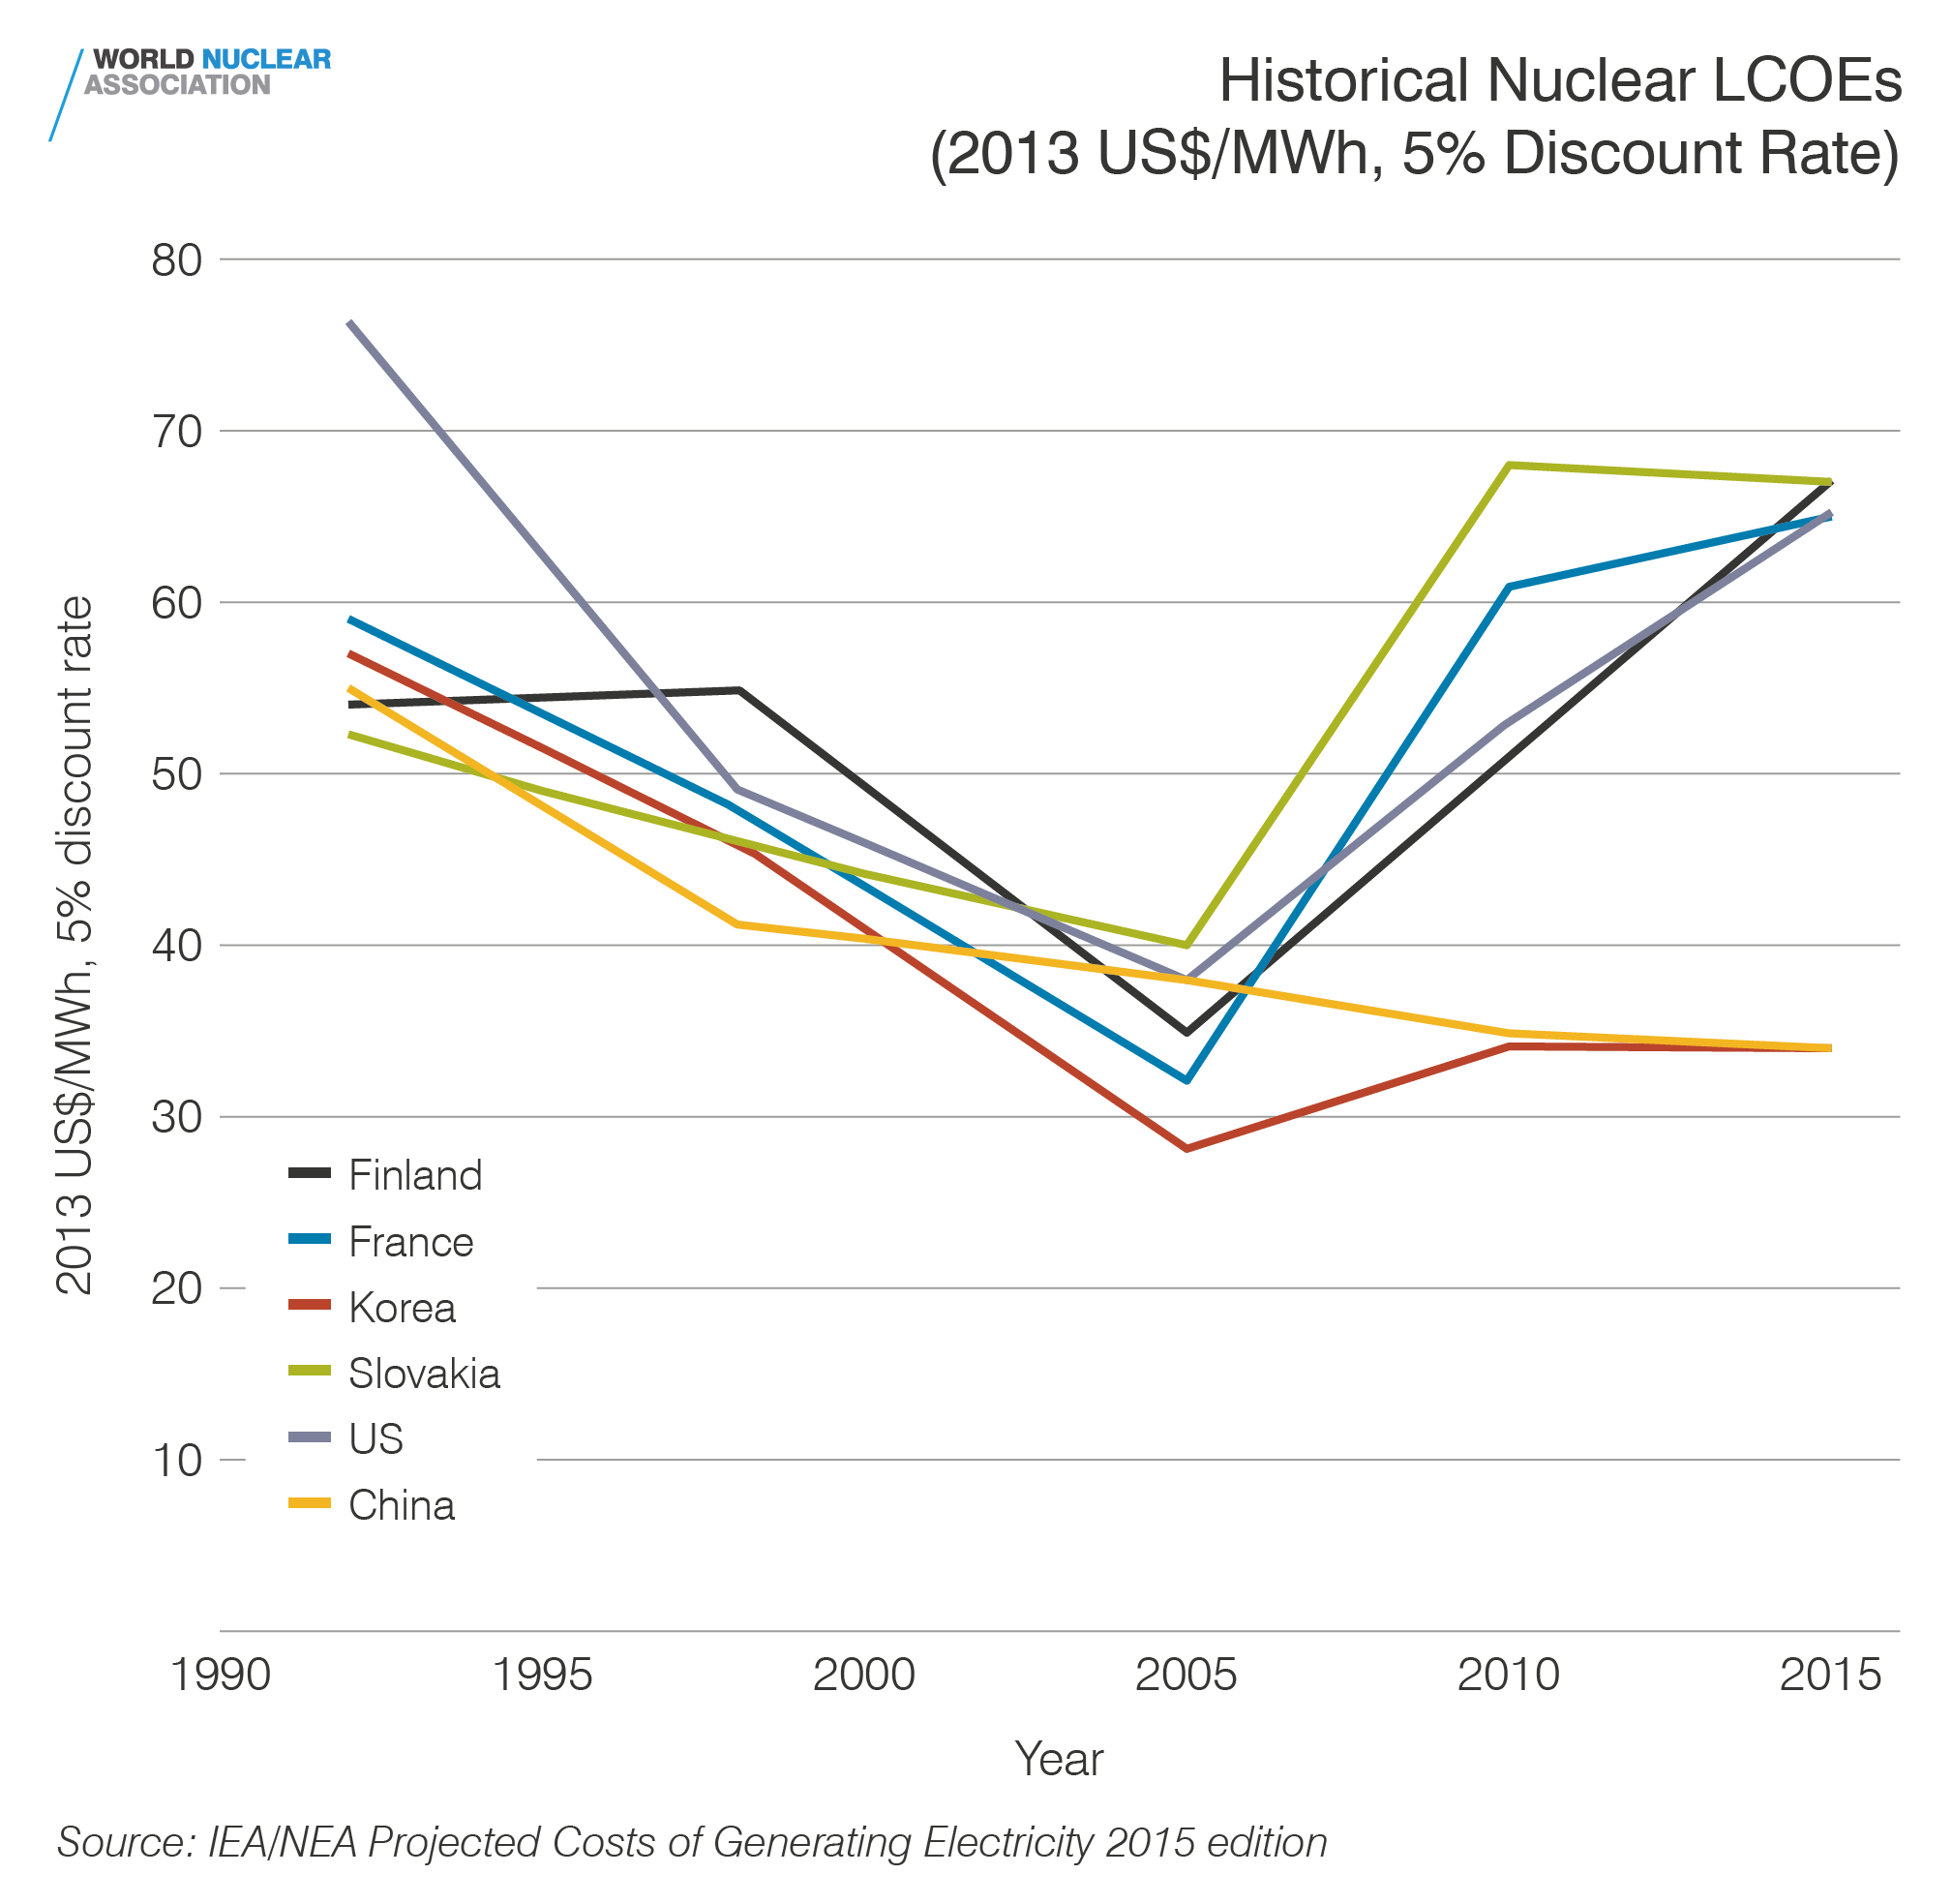 Historical Nuclear LCOEs (2013US$/MWh, 5% discount rate)